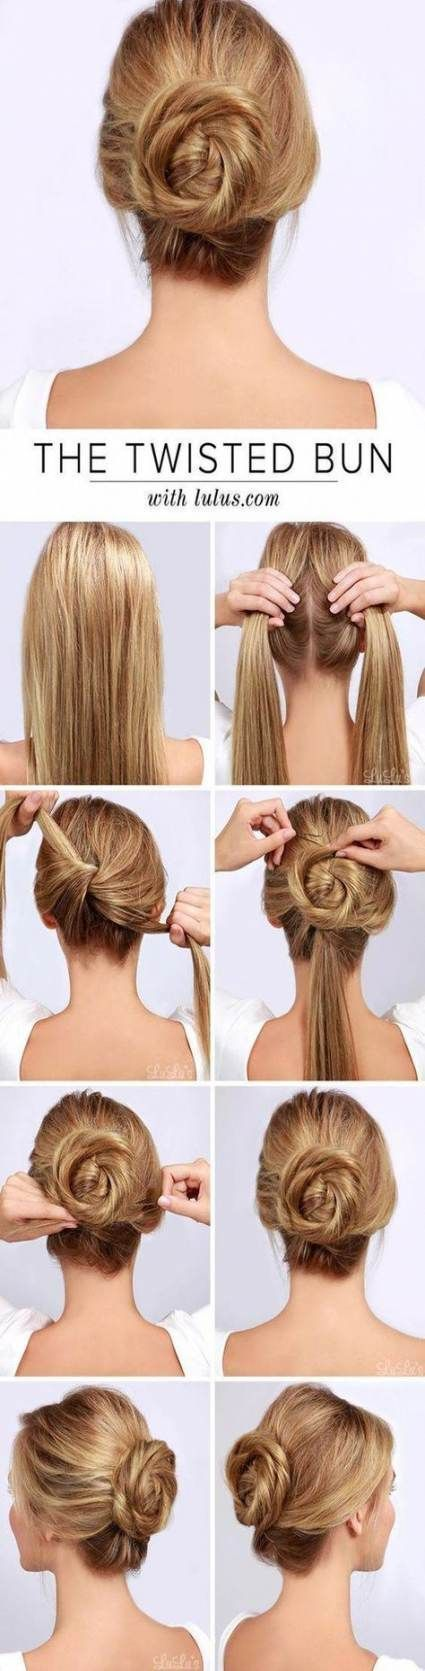 New hairstyles lazy girls easy 49 ideas, #simple # girls #craps #Ideas #slut -